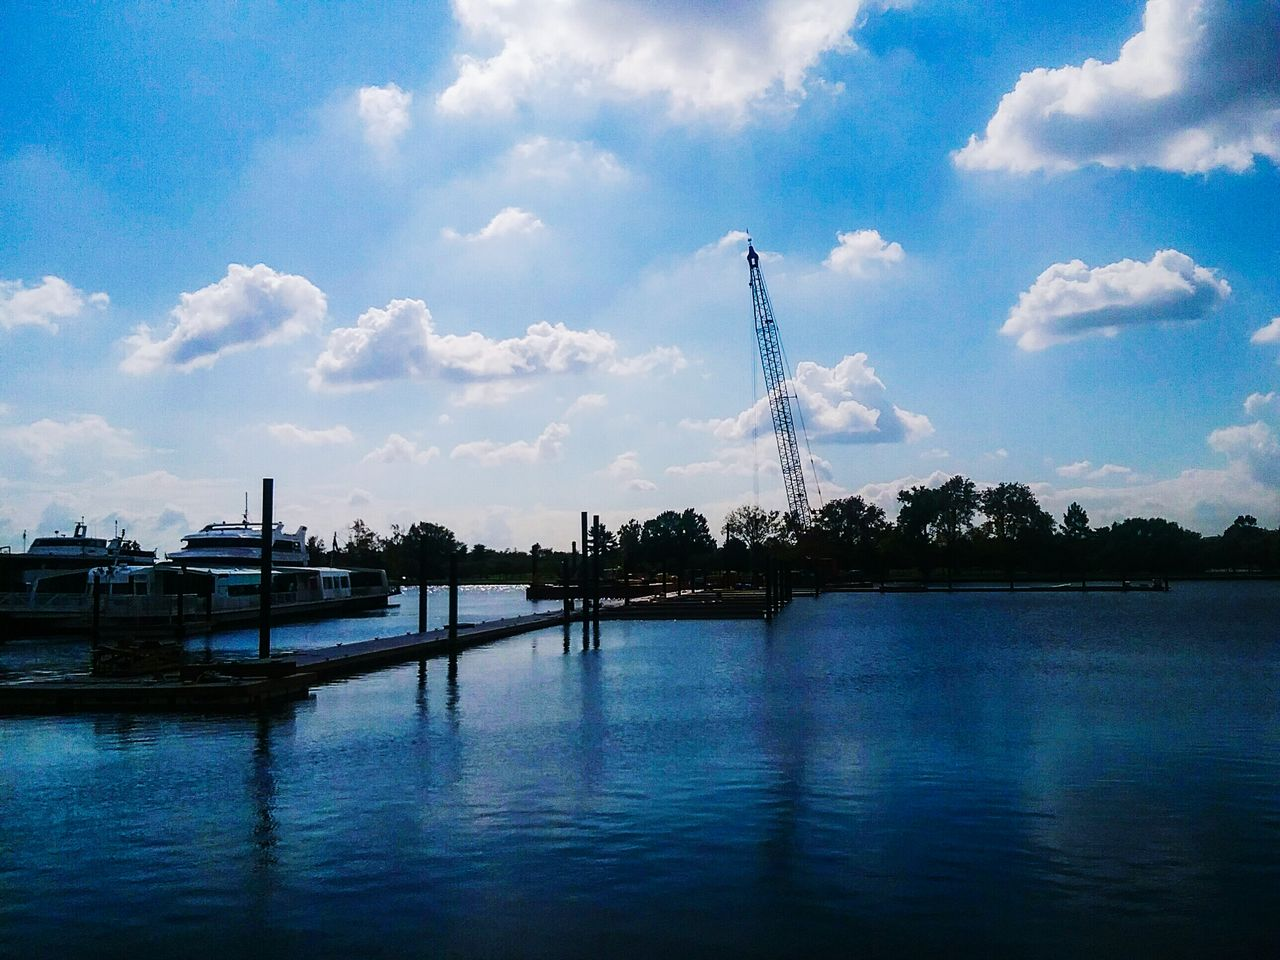 water, sky, cloud - sky, built structure, waterfront, river, architecture, outdoors, day, travel destinations, transportation, no people, nature, tree, ferris wheel, building exterior, beauty in nature